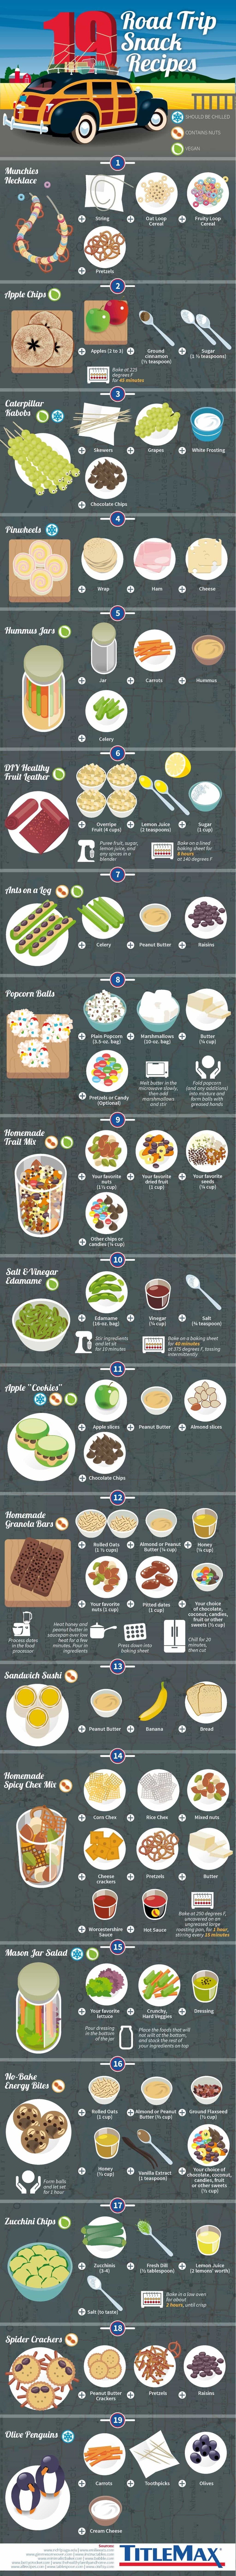 The Best Snacks For Your Next Road Trip Daily Infographic